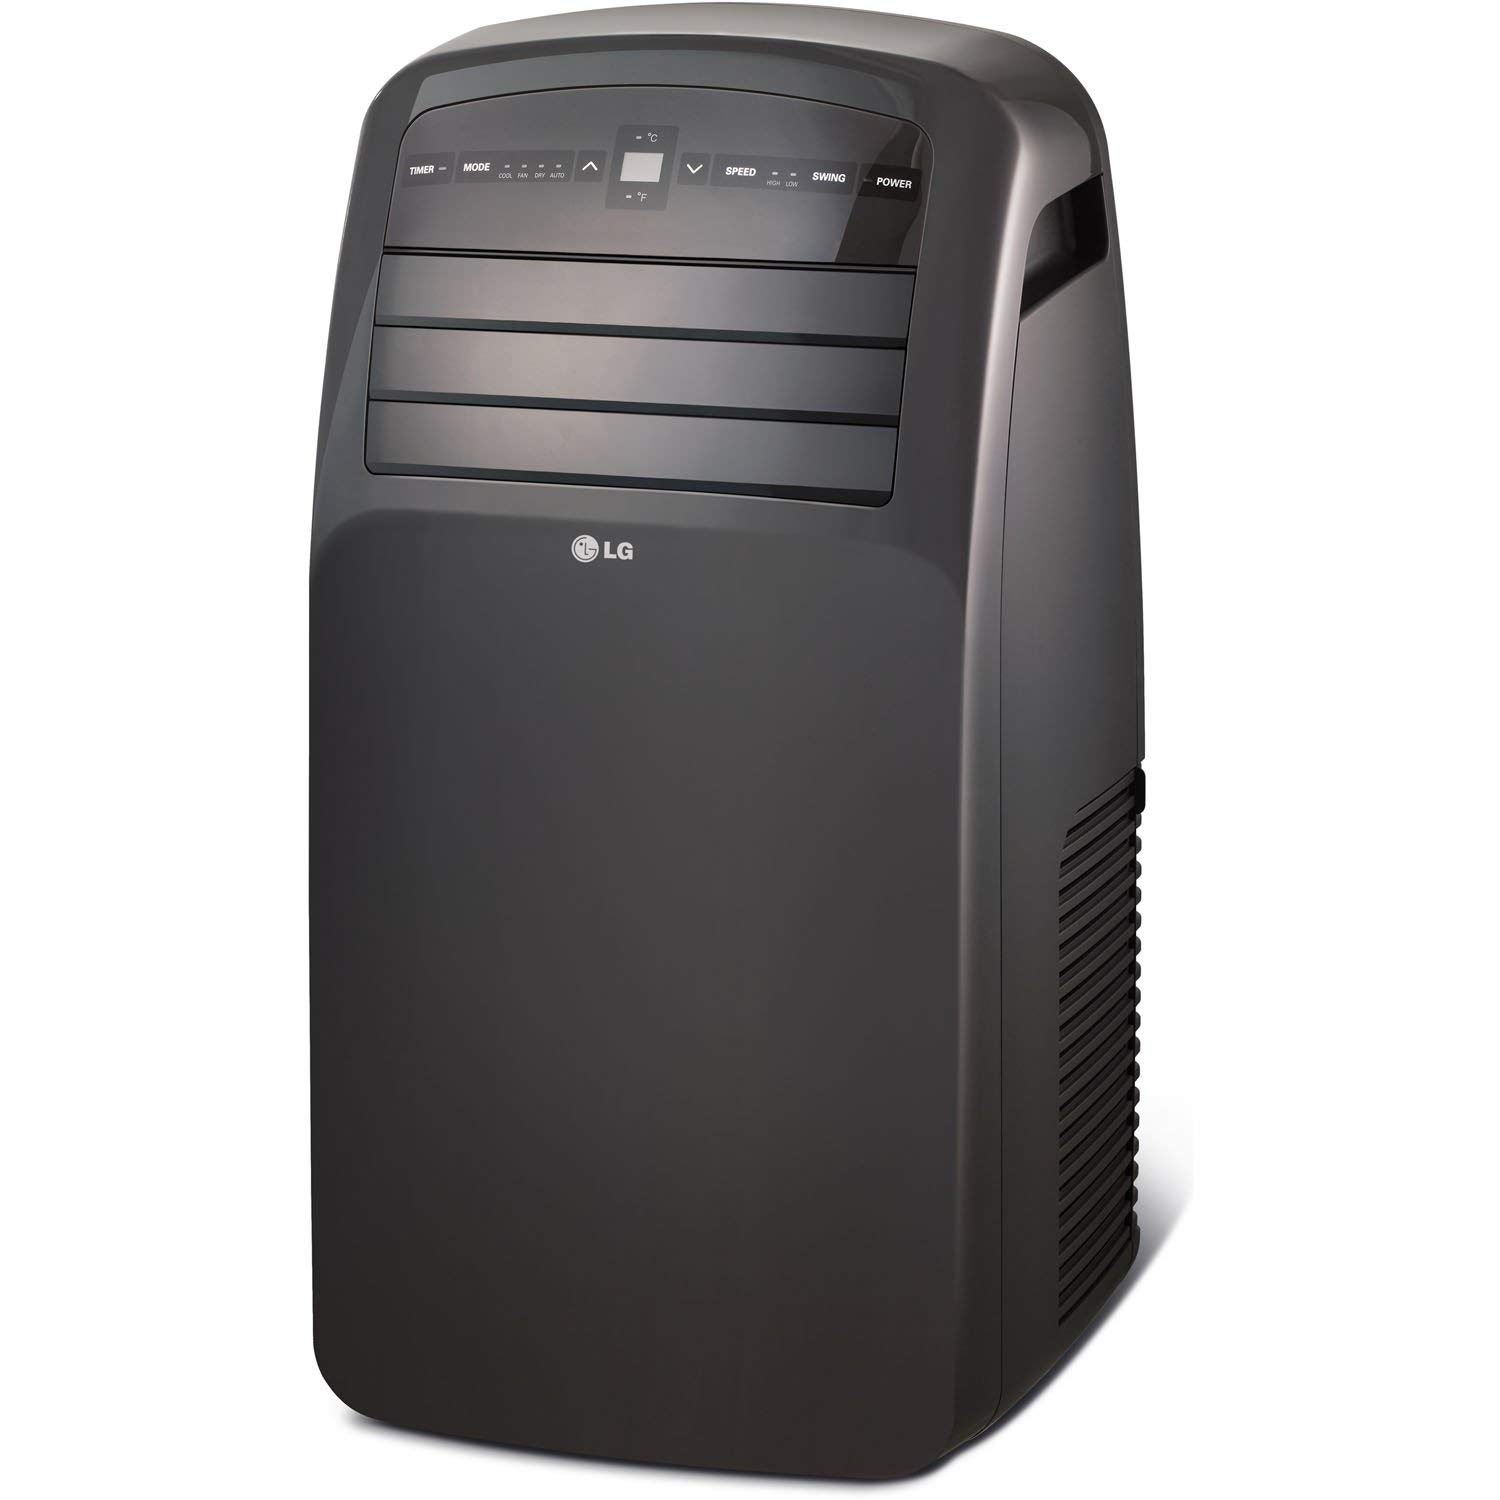 LG 115V Portable Air Conditioner, LP1215GXR